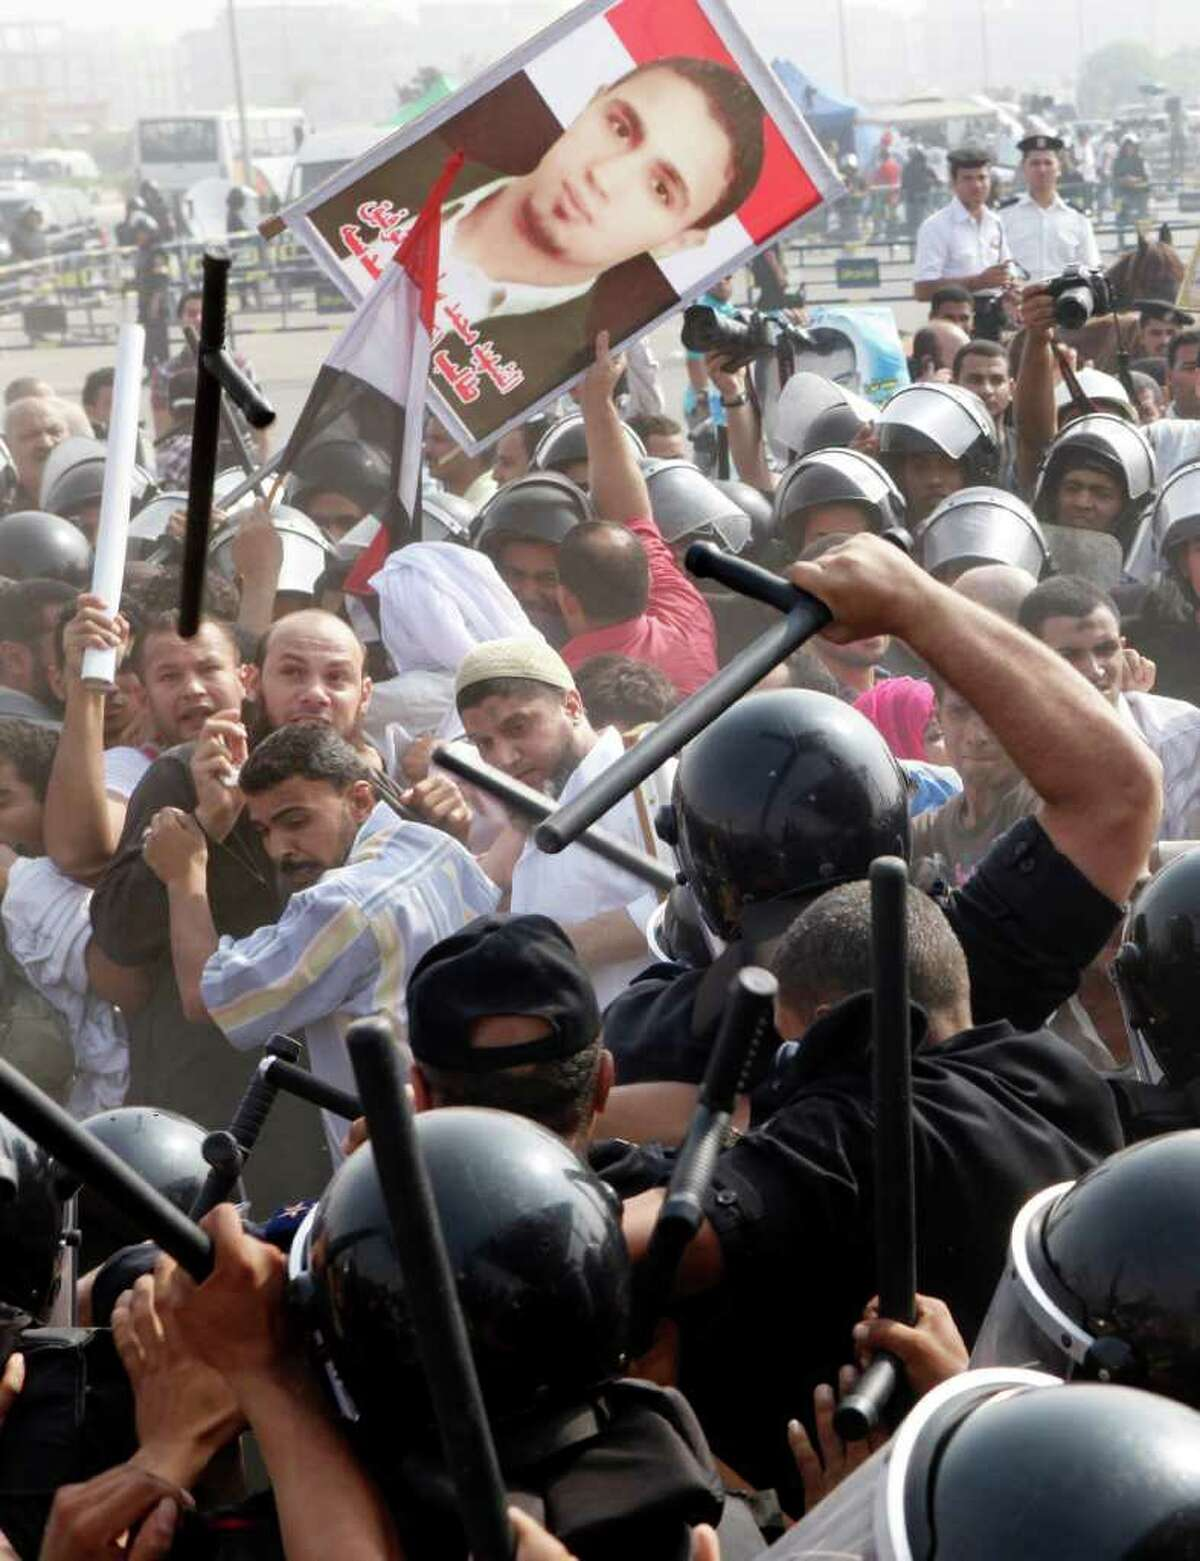 Egyptian anti-Mubarak protesters flee from clashes with riot policemen outside police academy court in Cairo, Egypt, Monday, Sept. 5, 2011. Mubarak, his two sons Alaa and Gamal, his security chief Habib el-Adly and six top police officers face their third session of trial, on charges they ordered the use of lethal force against protesters during Egypt's 18-day uprising, when some 850 protesters were killed. Poster at center showing one of the killed protesters. (AP Photo/Amr Nabil)